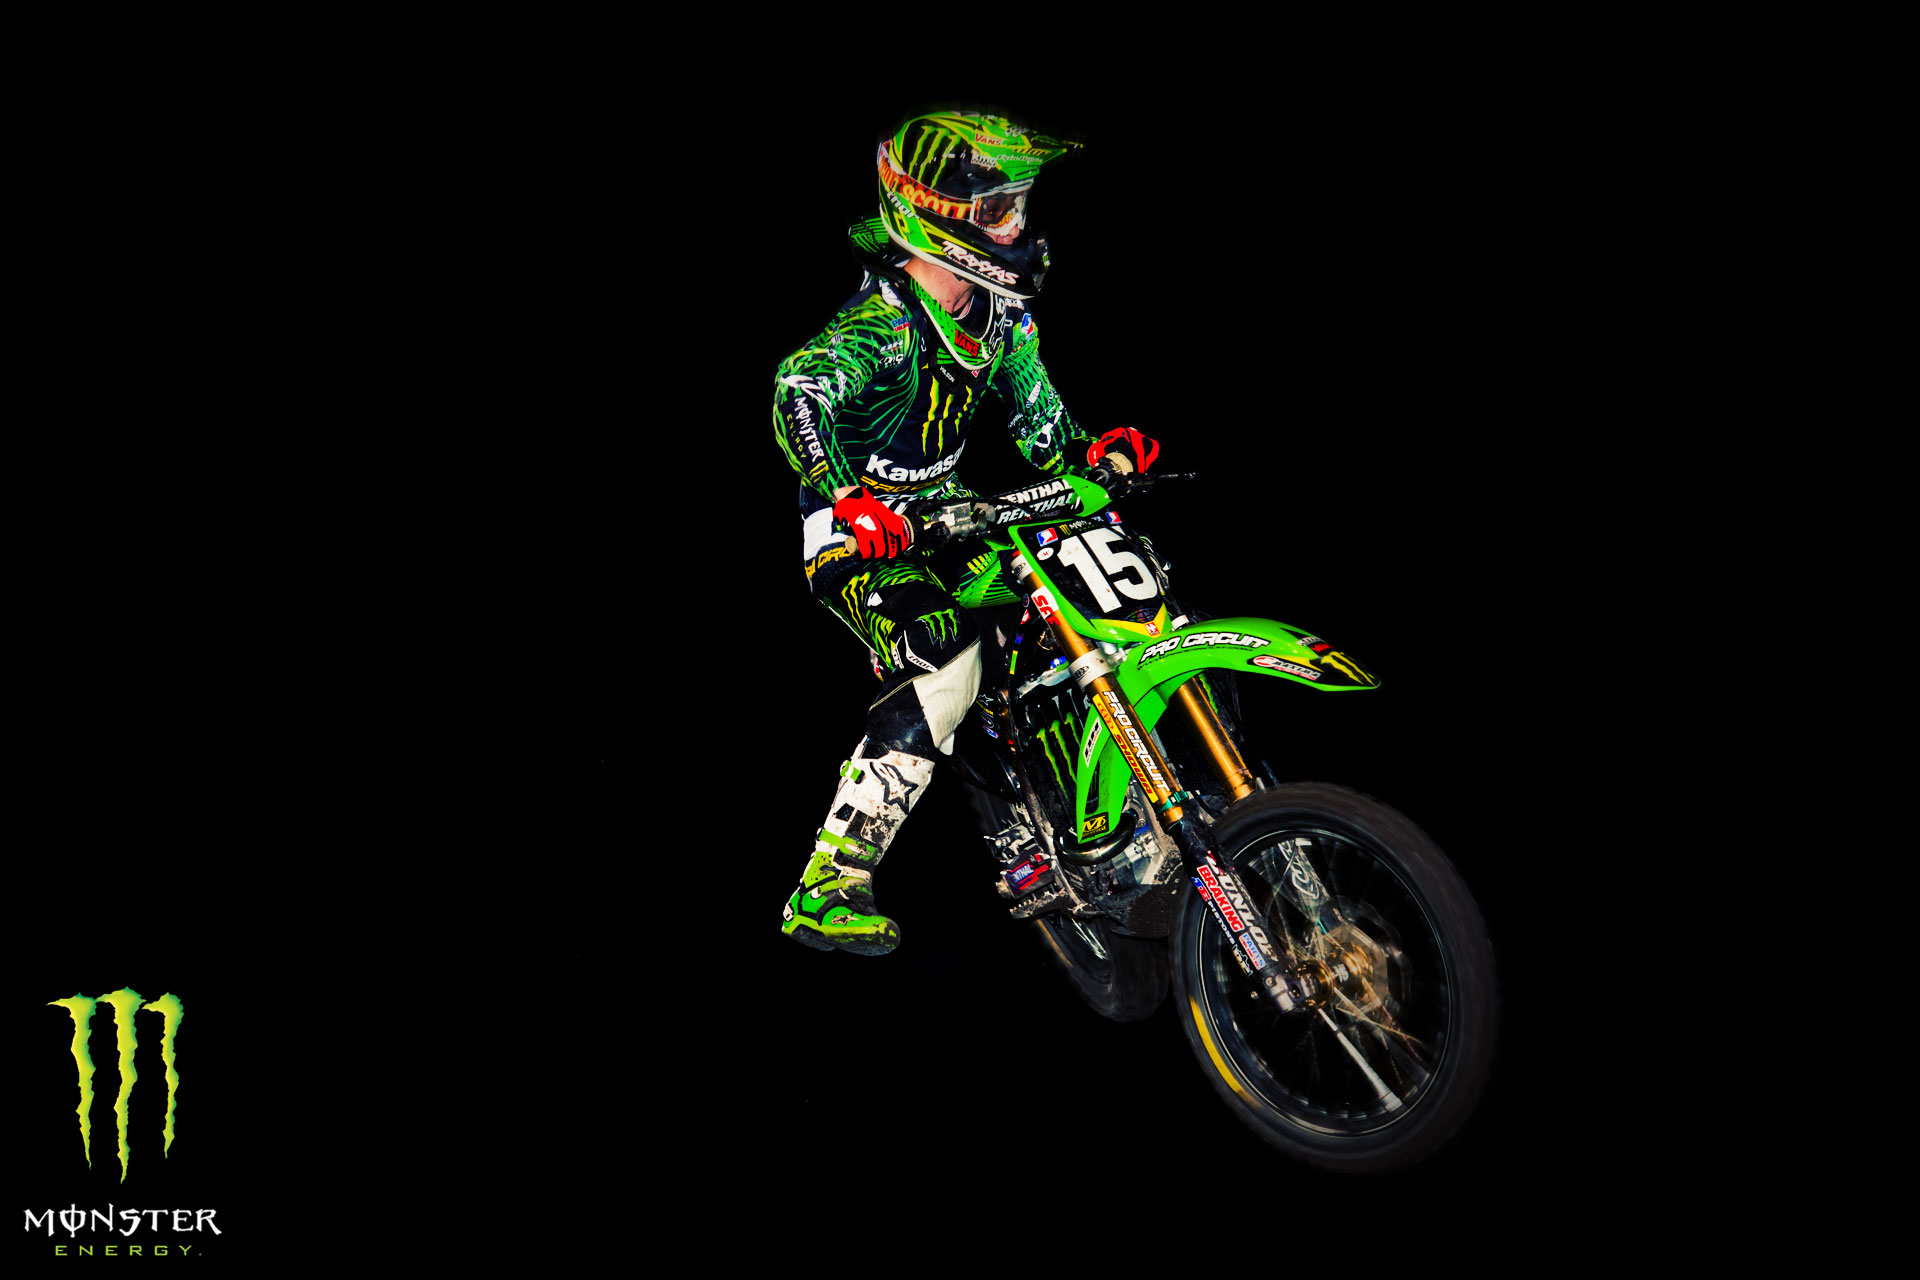 Attractive Etonnant Green Black Monster Energy Wallpaper #8795 Wallpaper | Wallpaper .